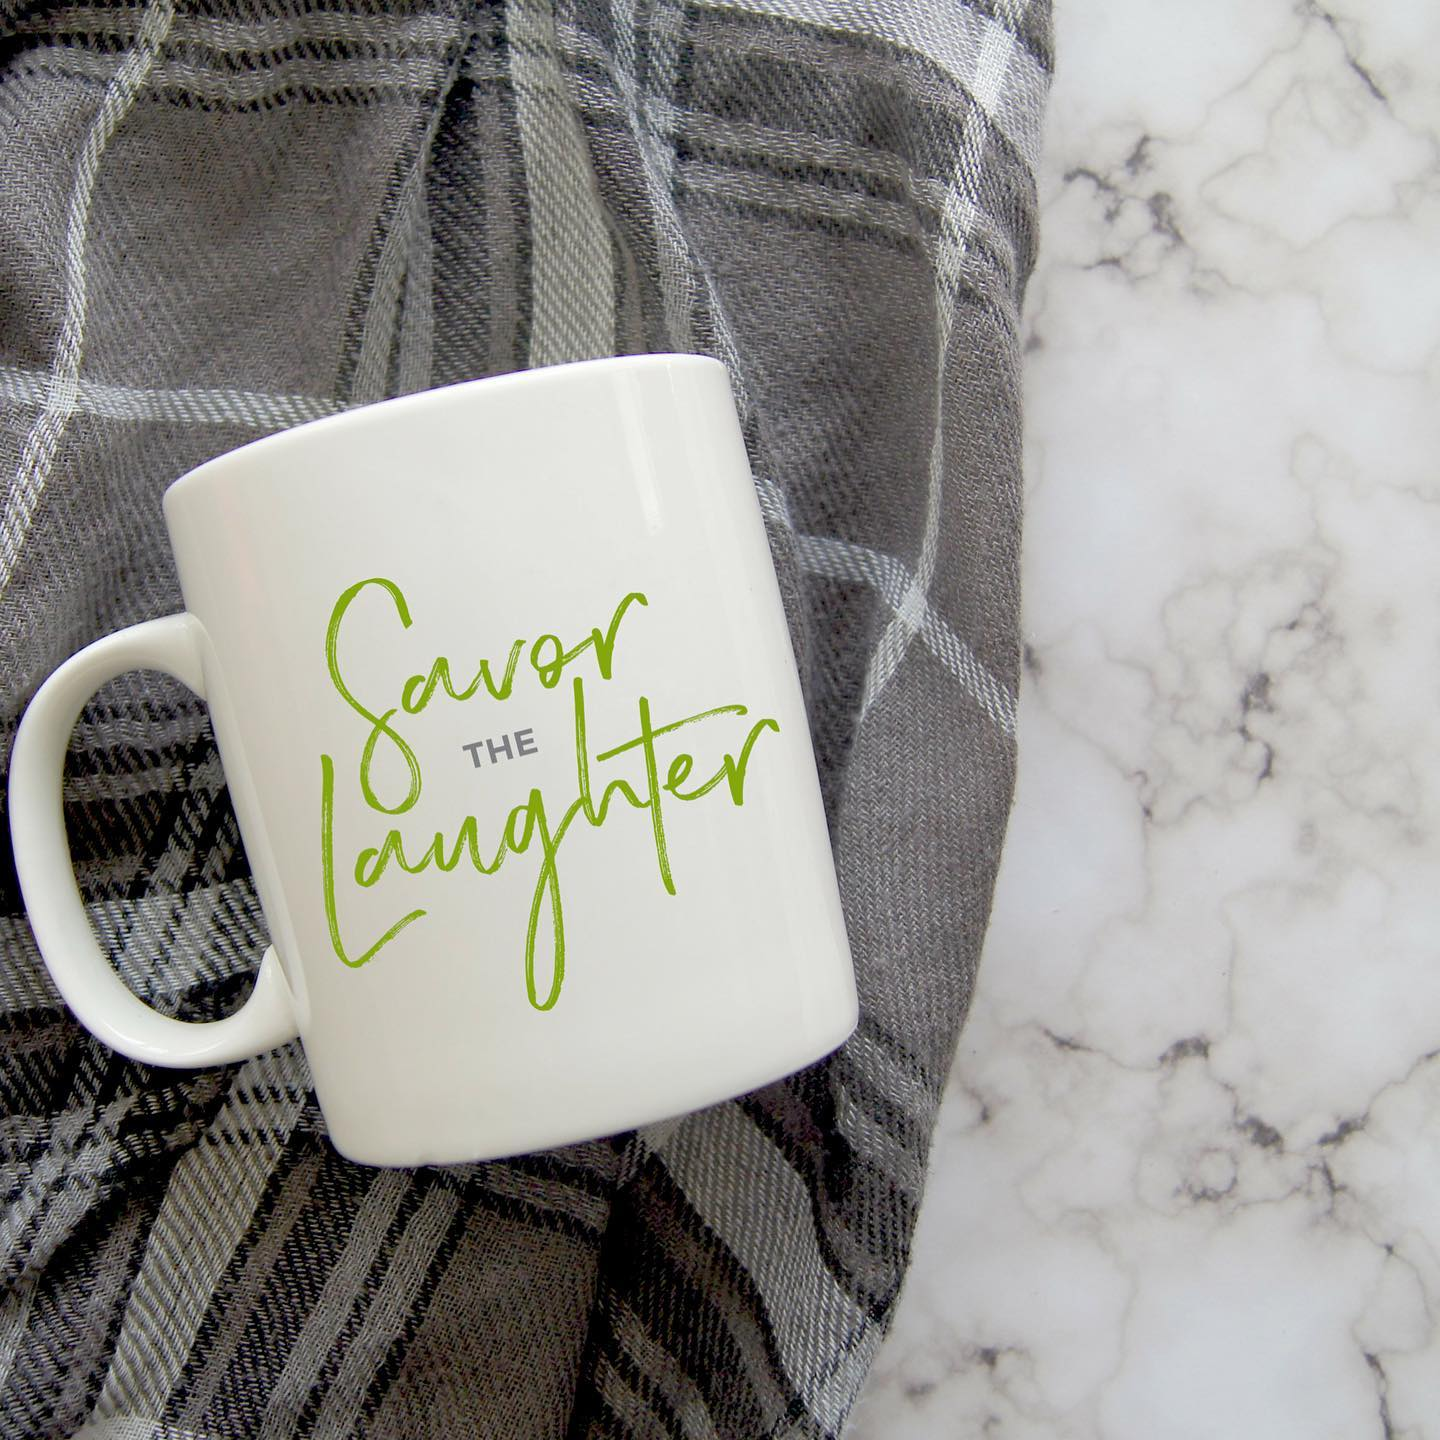 Make the most of the good times, and savor every single second of laughter.⁣⁣All of our mugs are created using the healing power of words, and come in two sizes - 11 oz. and 15 oz.⁣⁠⁣⁠⁣⁠⁣⁠⁣5% of net proceeds goes to @MentalHealthAmerica. #ichoosebeauty